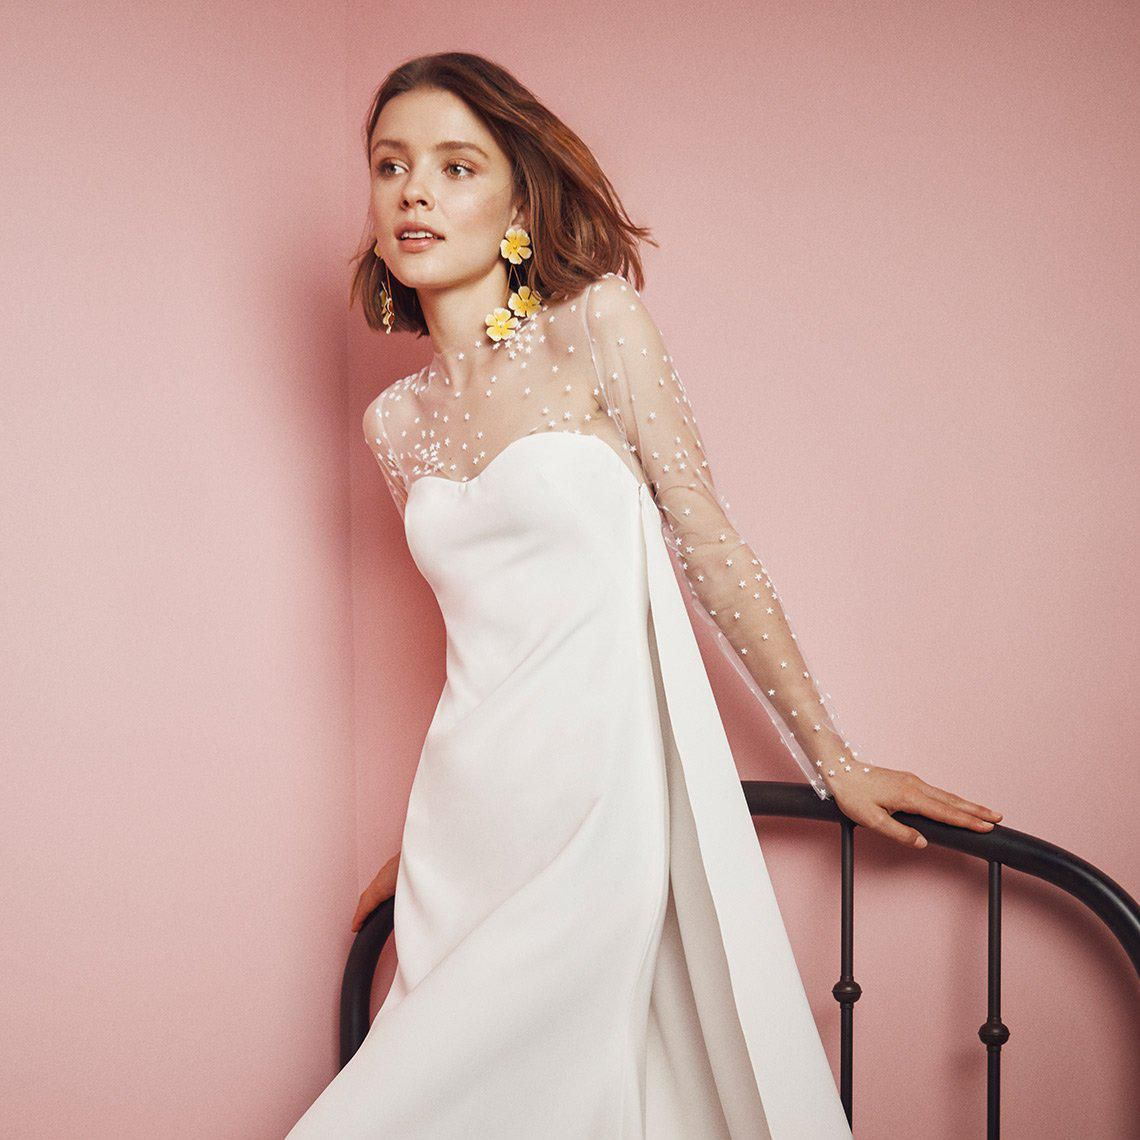 18 Vow Renewal Dresses From Minimalist To Glam,Dresses To Wear In A Wedding As Guest